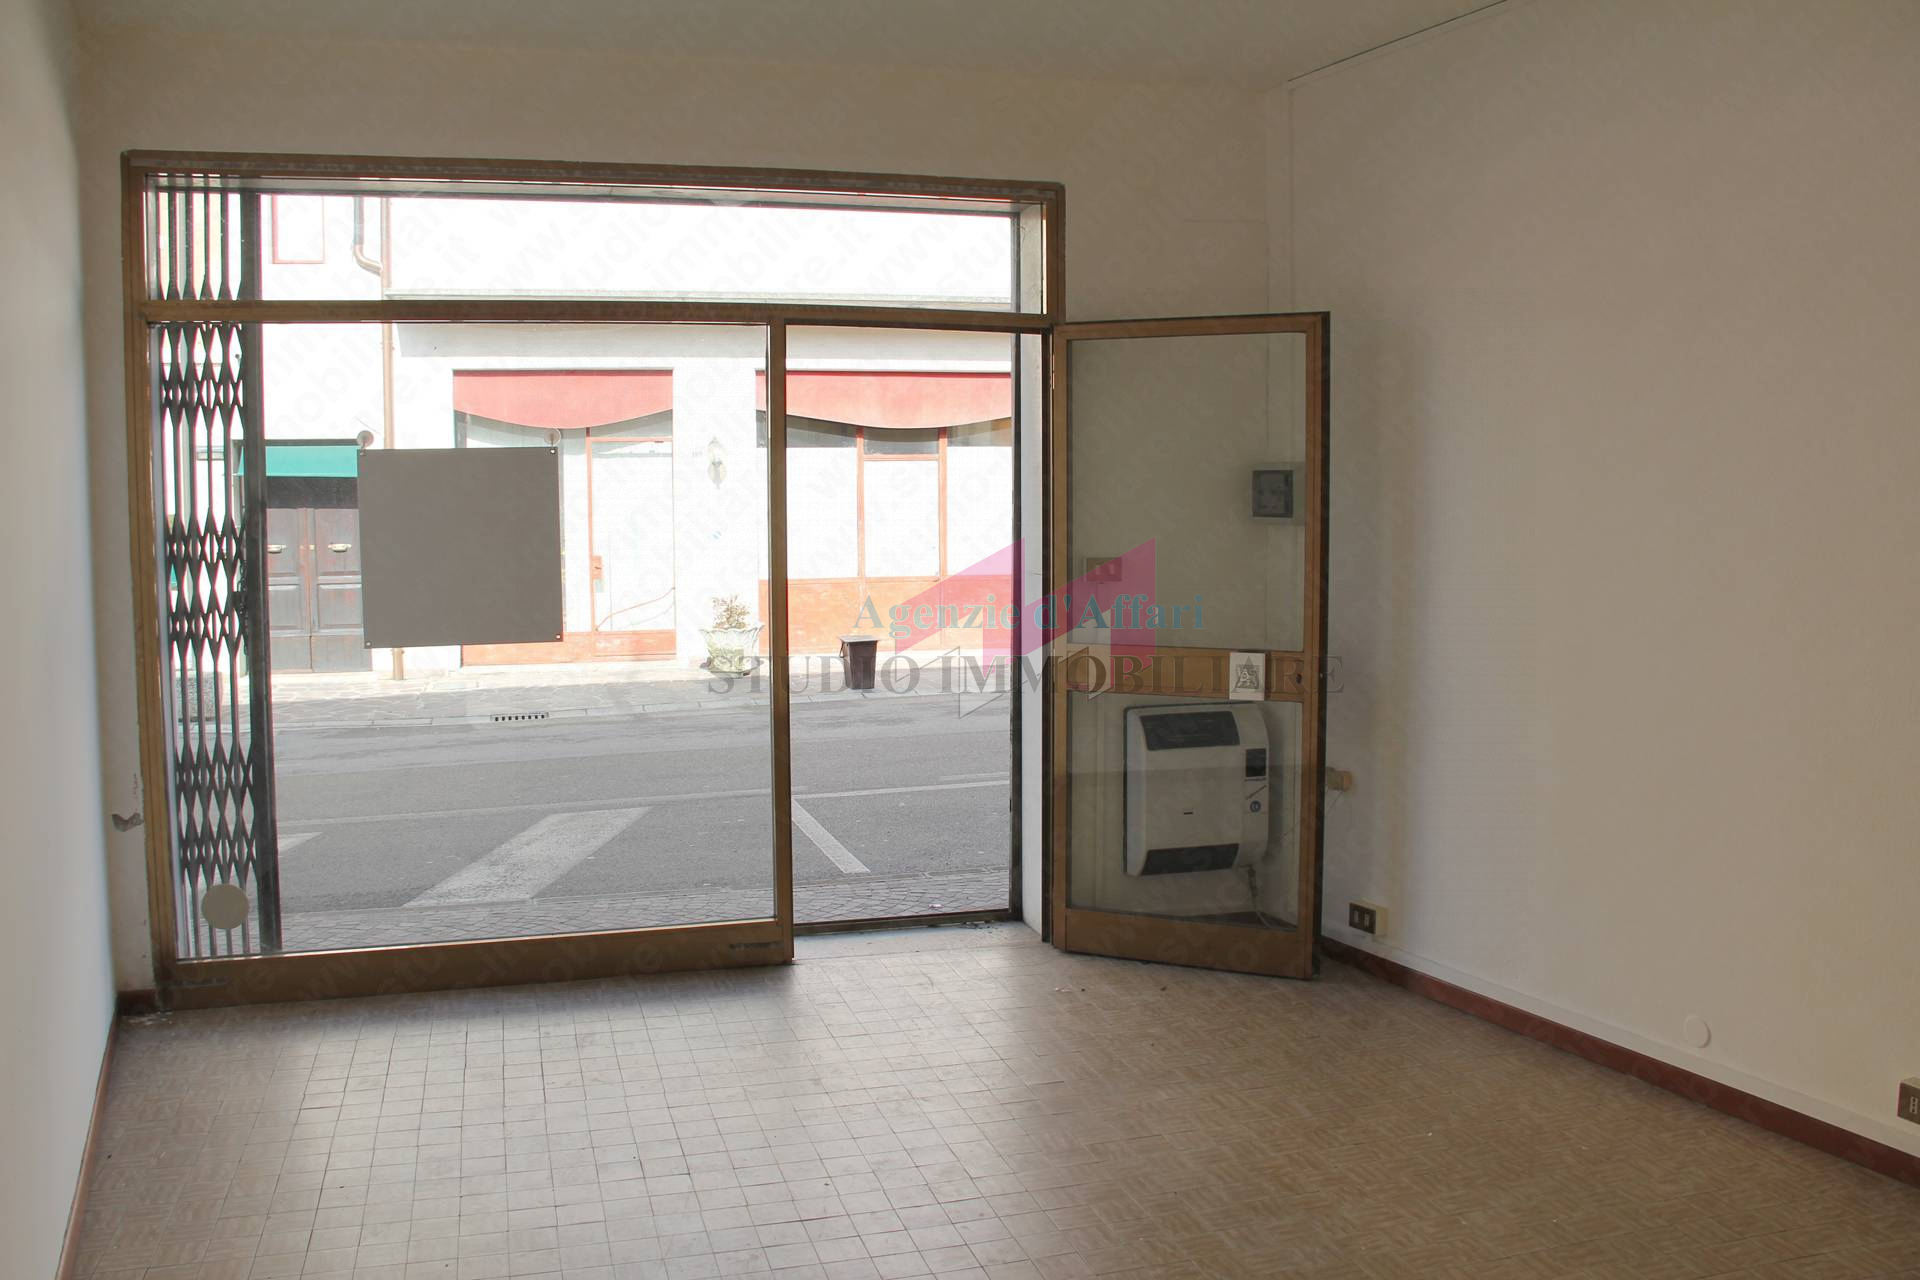 Locale commerciale in affitto a bergantino cod 3120 b for Affitto commerciale